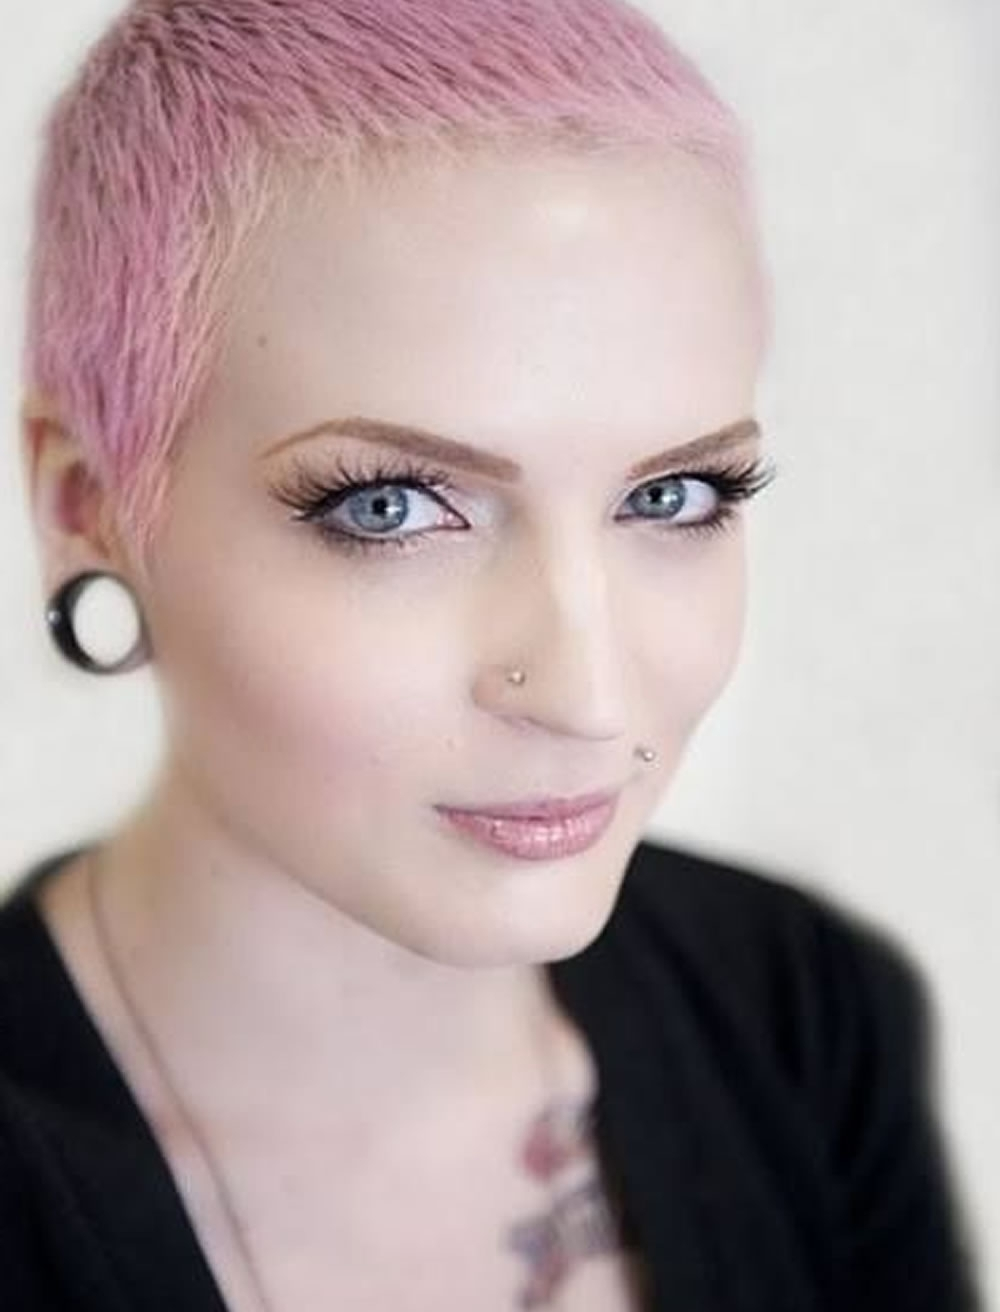 Trend Pixie Haircuts For Thick Hair 2018 2019 : 28 Terrific Pixie In Current Thick Pixie Hairstyles (View 5 of 15)